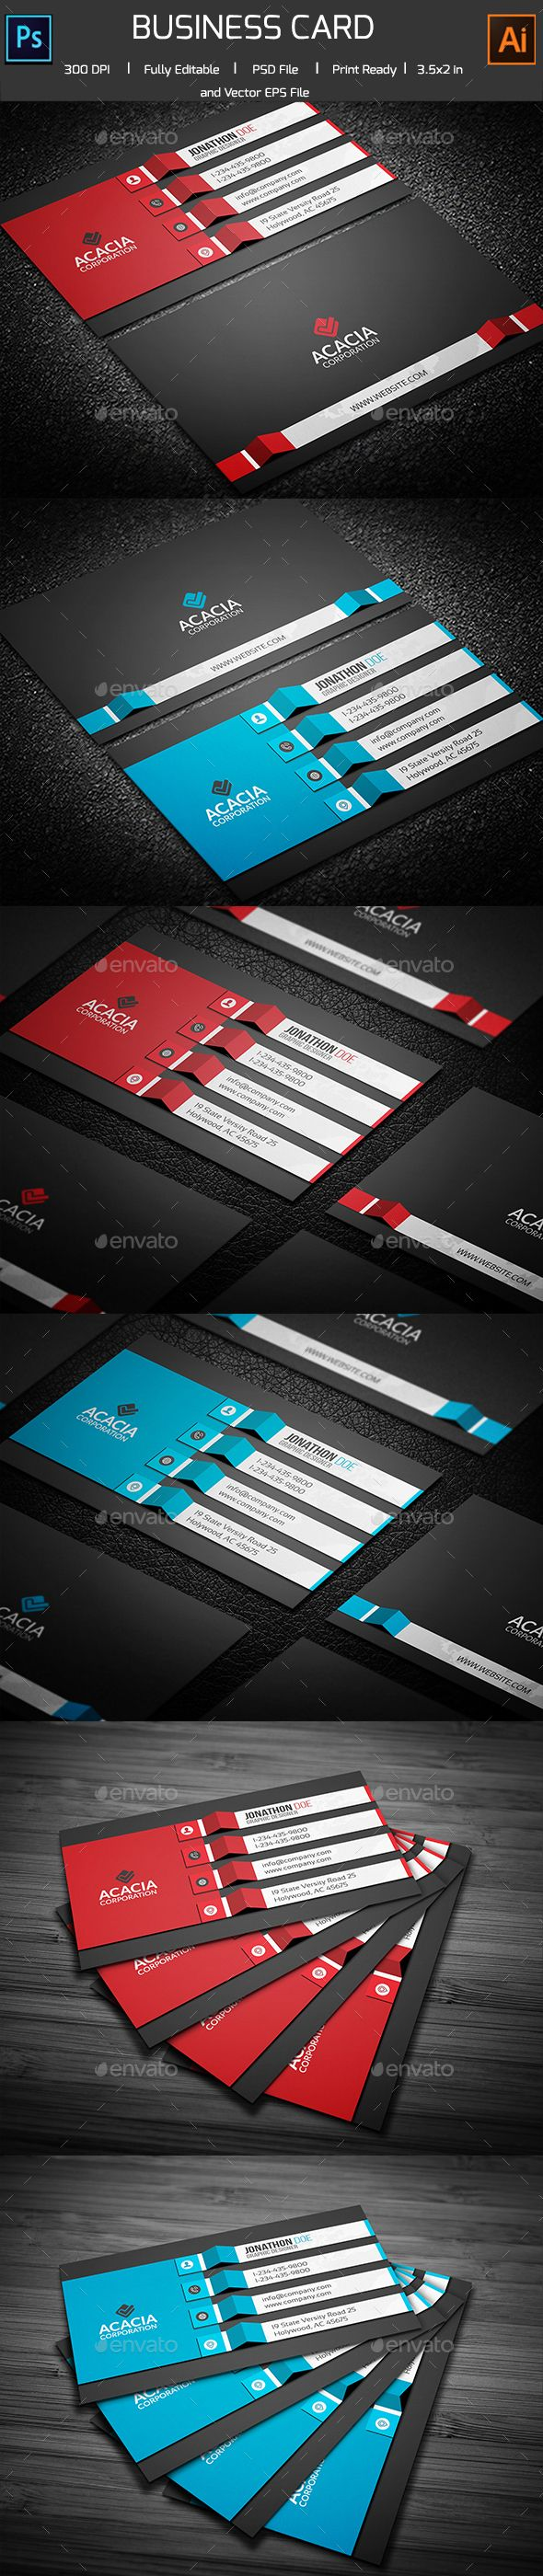 1750 best Minimal Business Card images on Pinterest | Script fonts ...